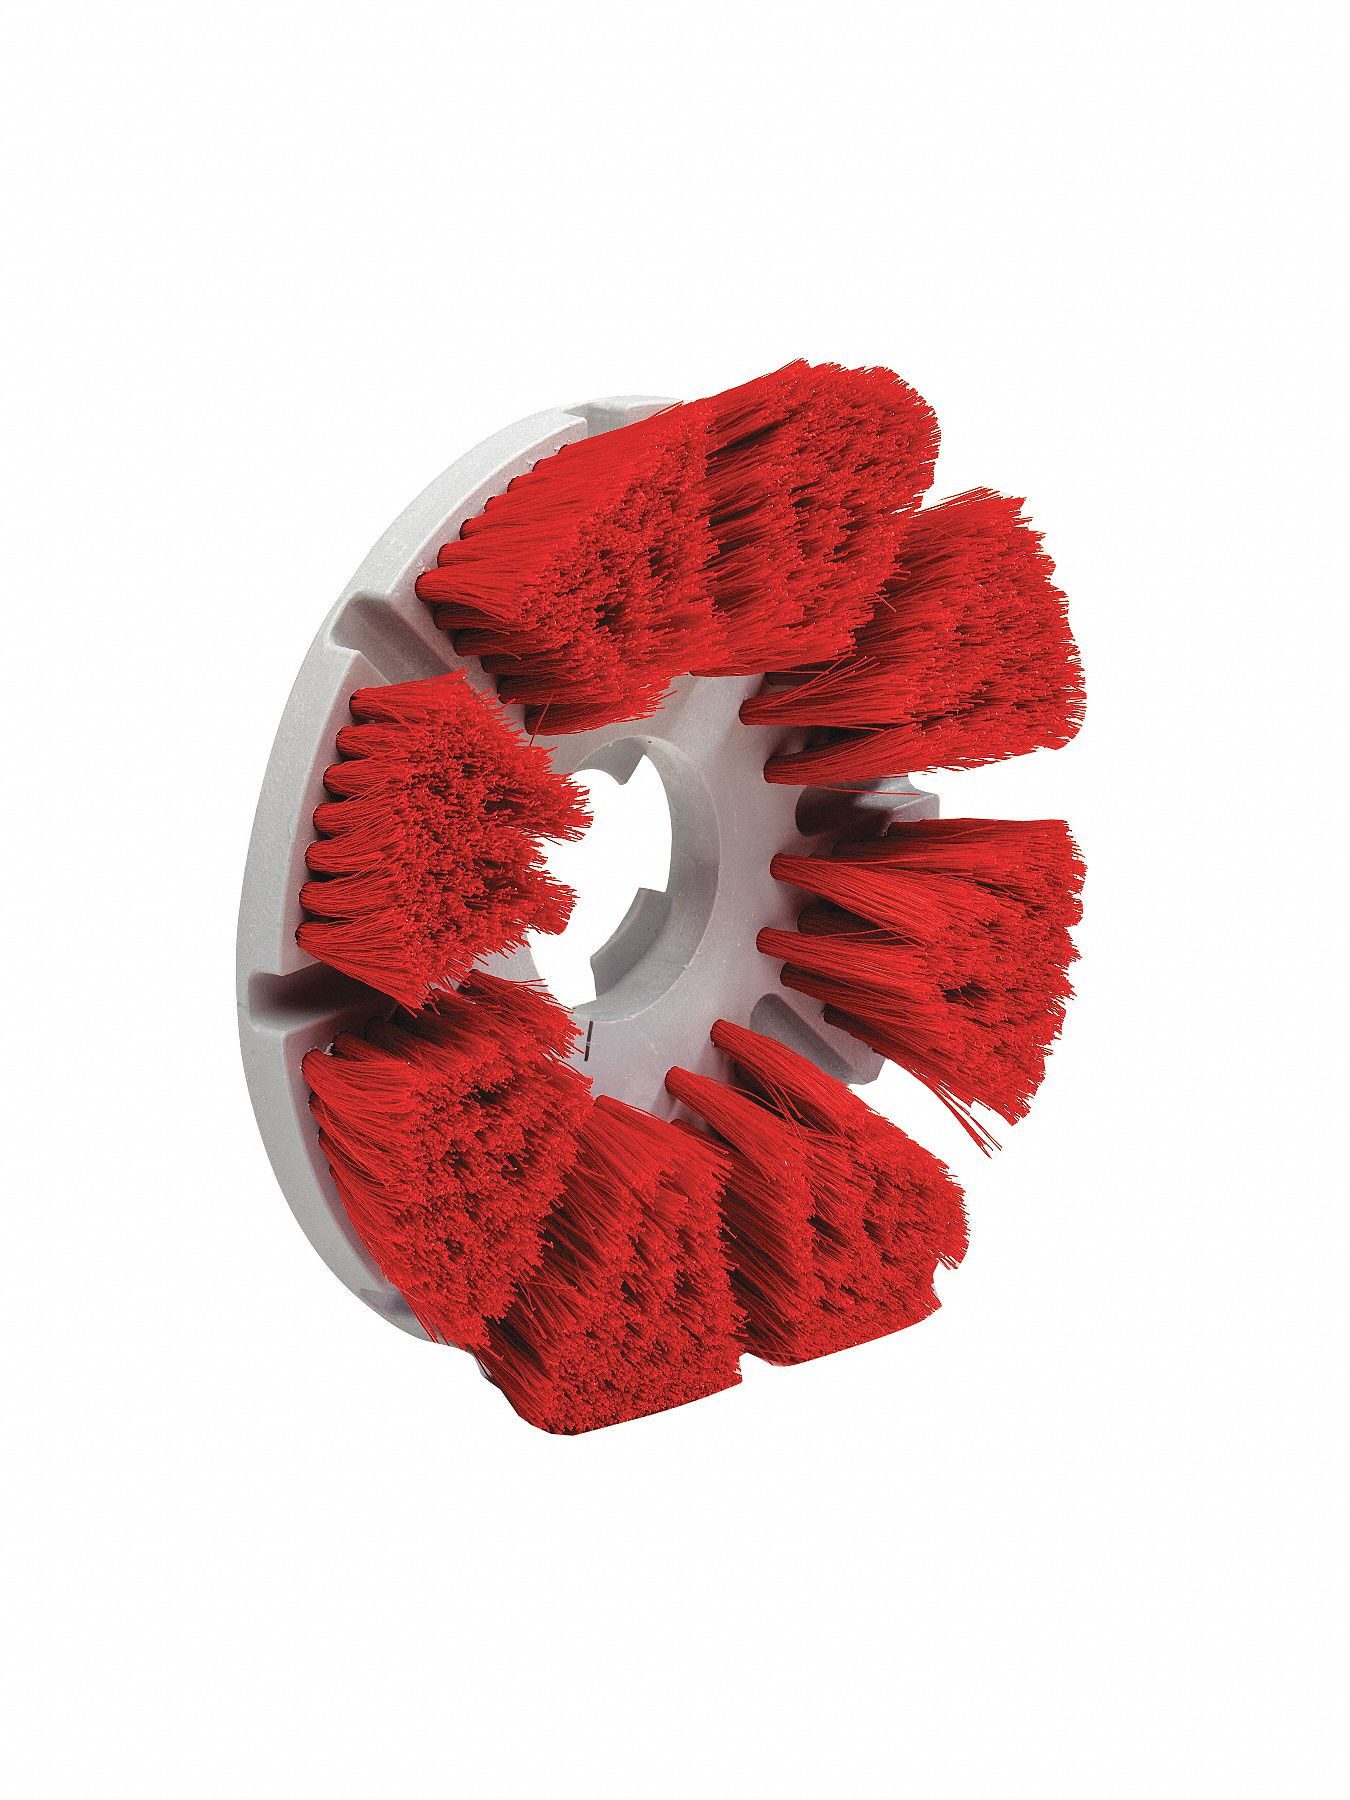 15 in Round Cleaning, Scrubbing Rotary Brush for 15 in Machine Size, Red